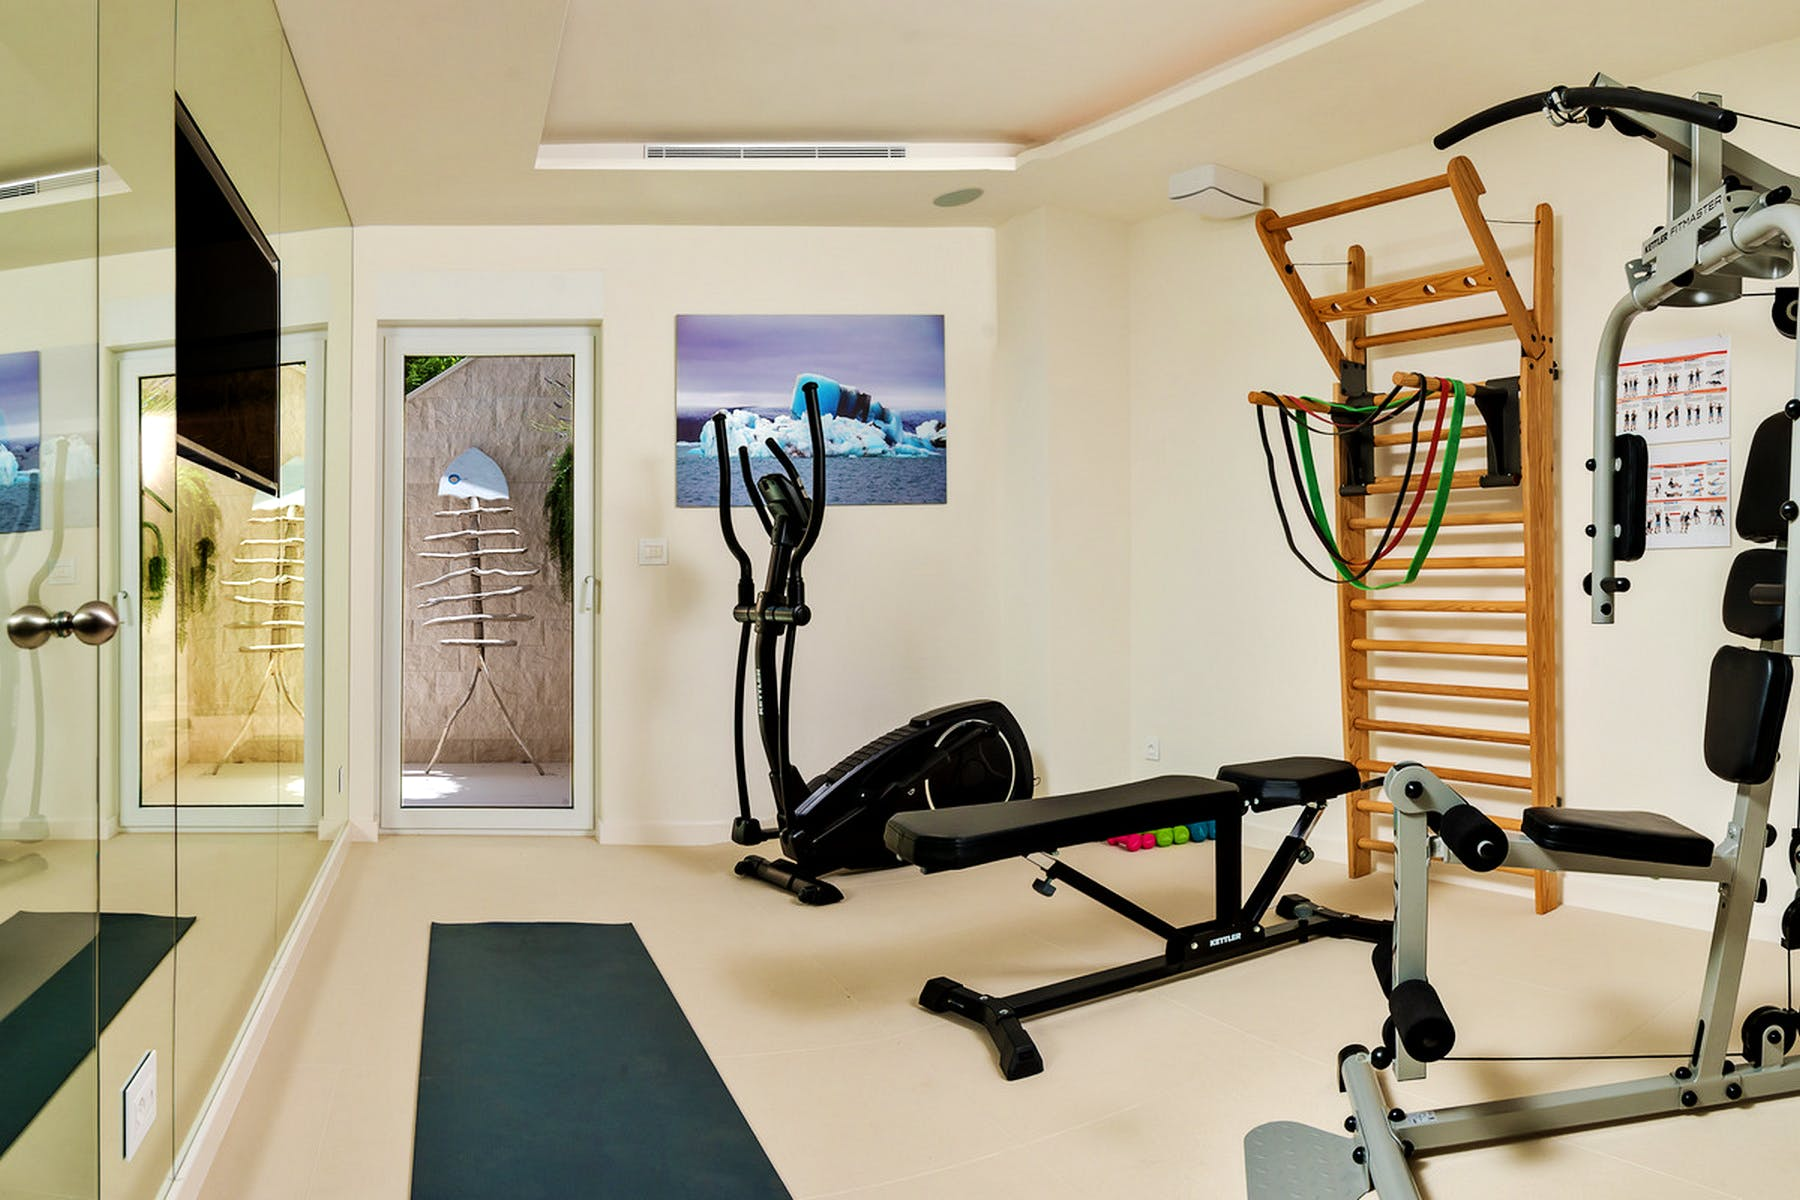 Well-equipped gym area